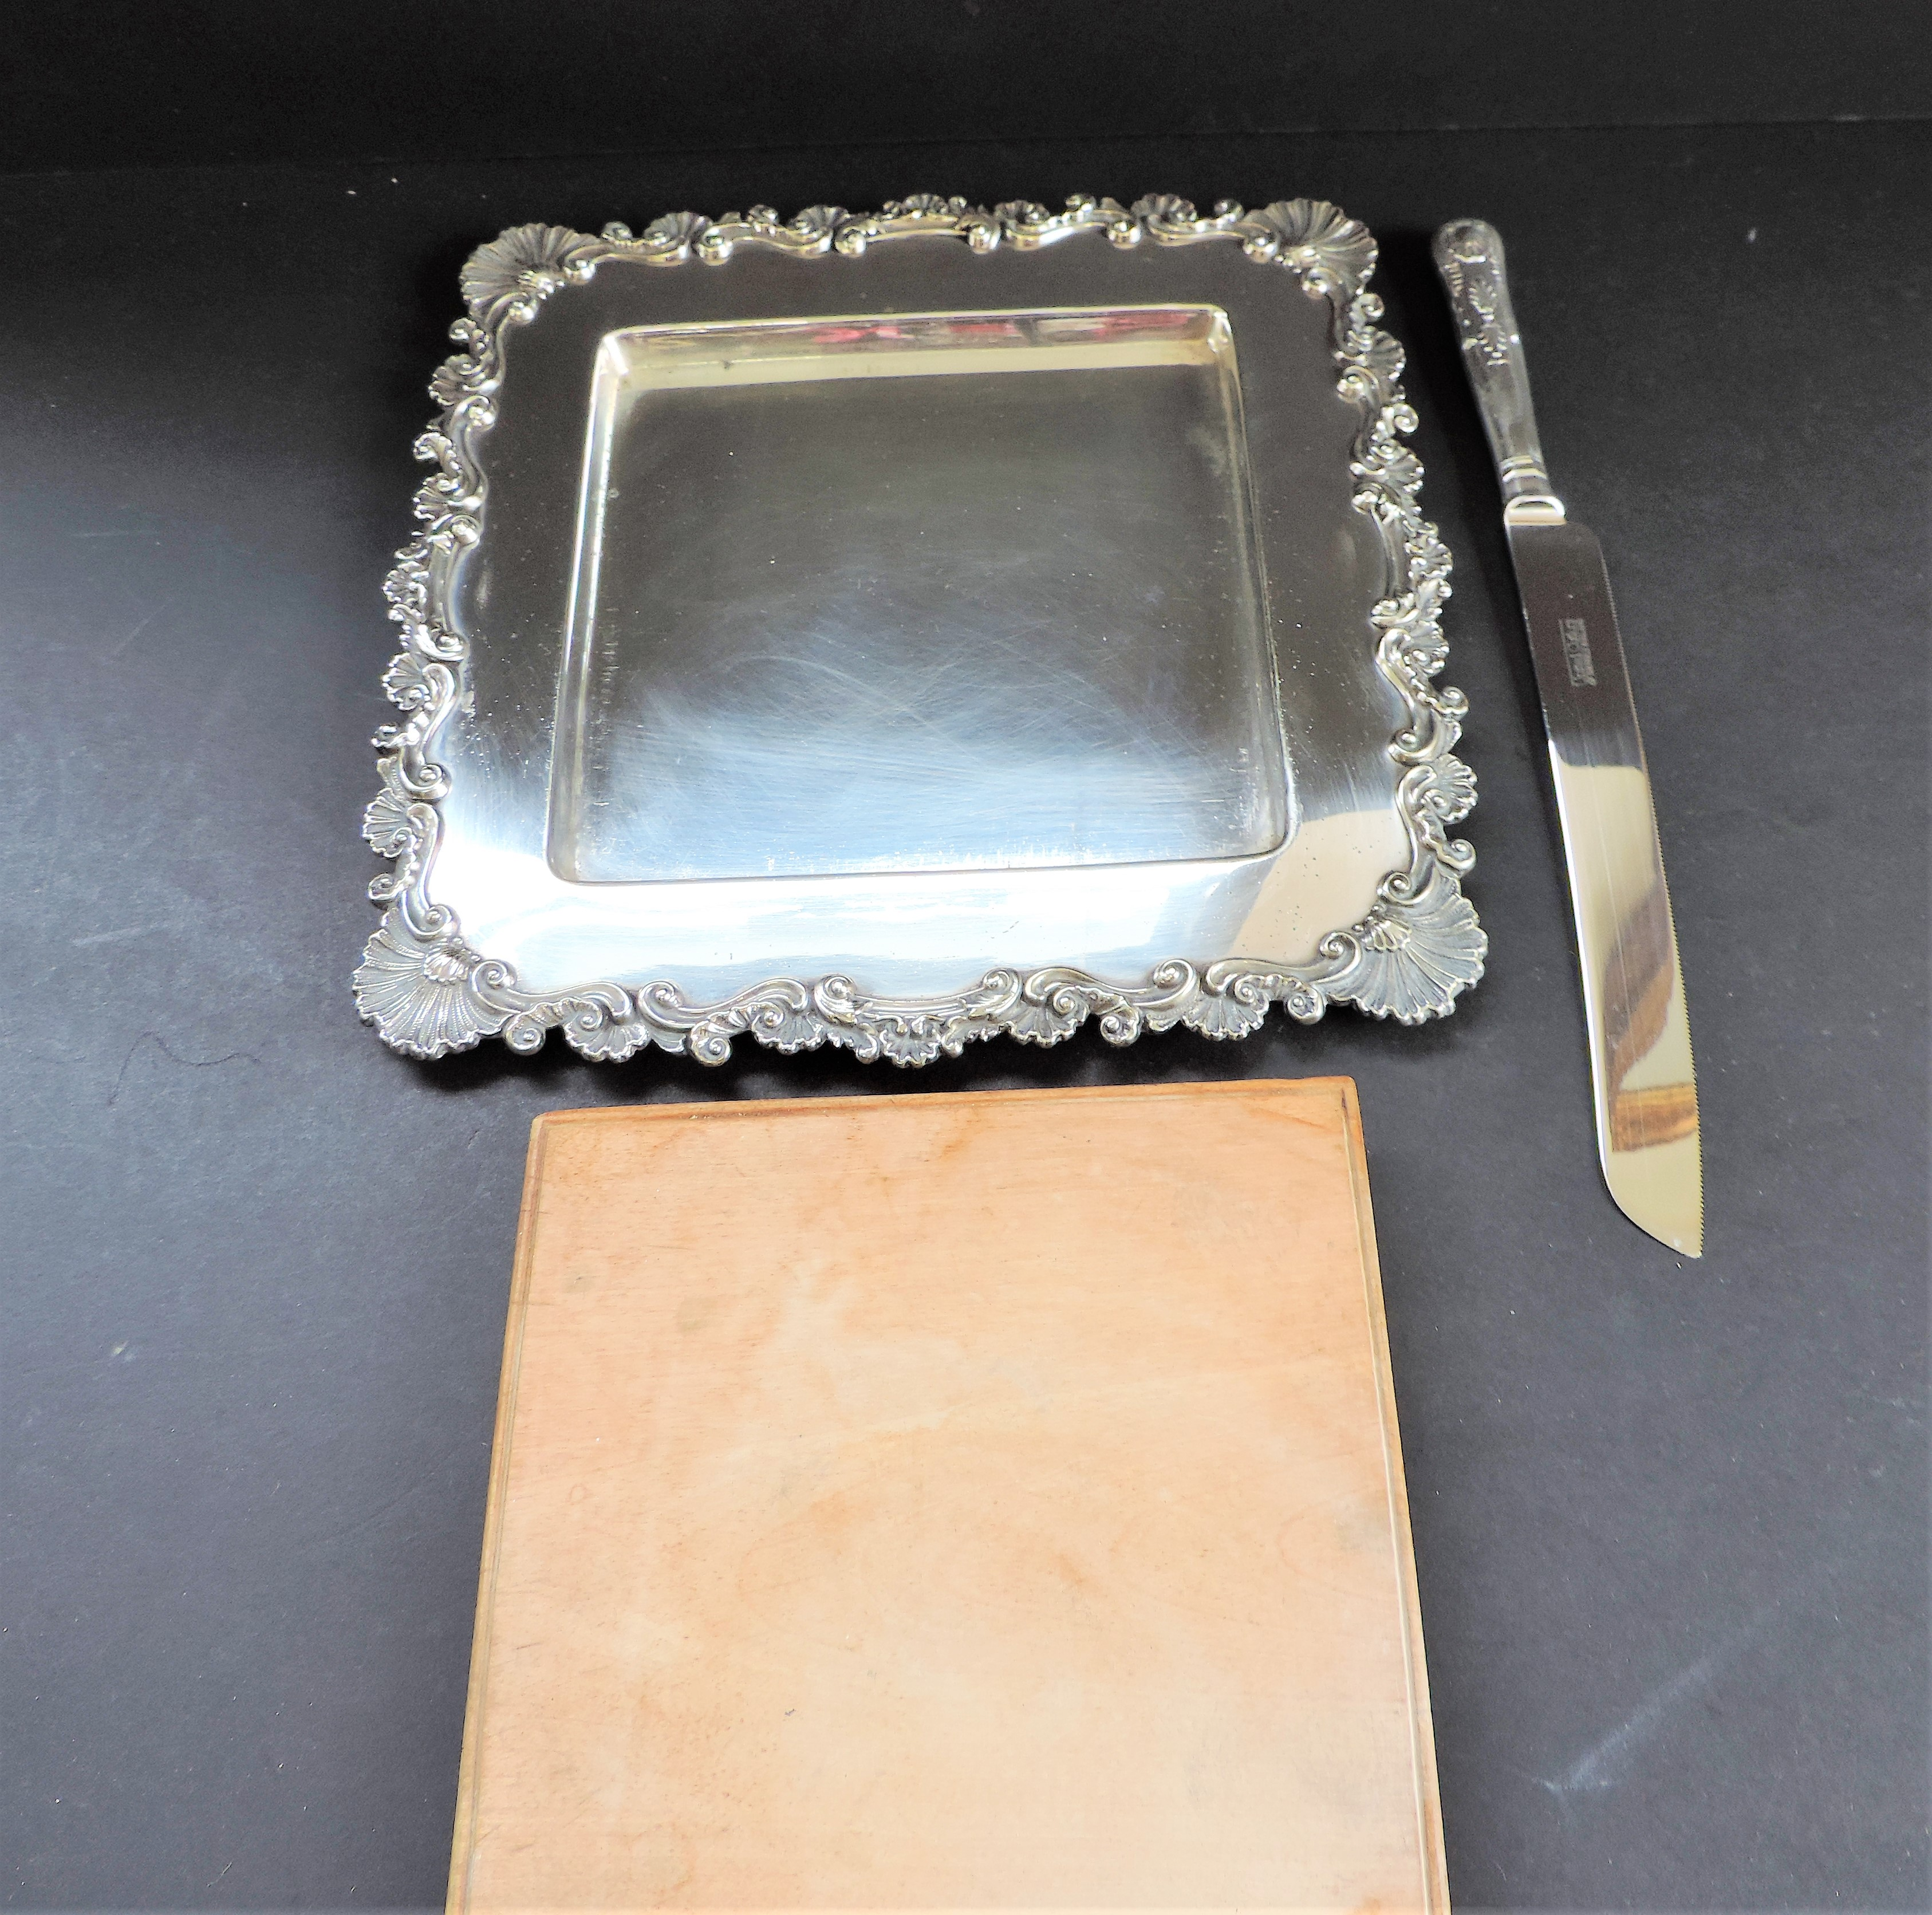 Antique Victorian Silver Plated Bread/Cheese Board Serving Set - Image 3 of 6